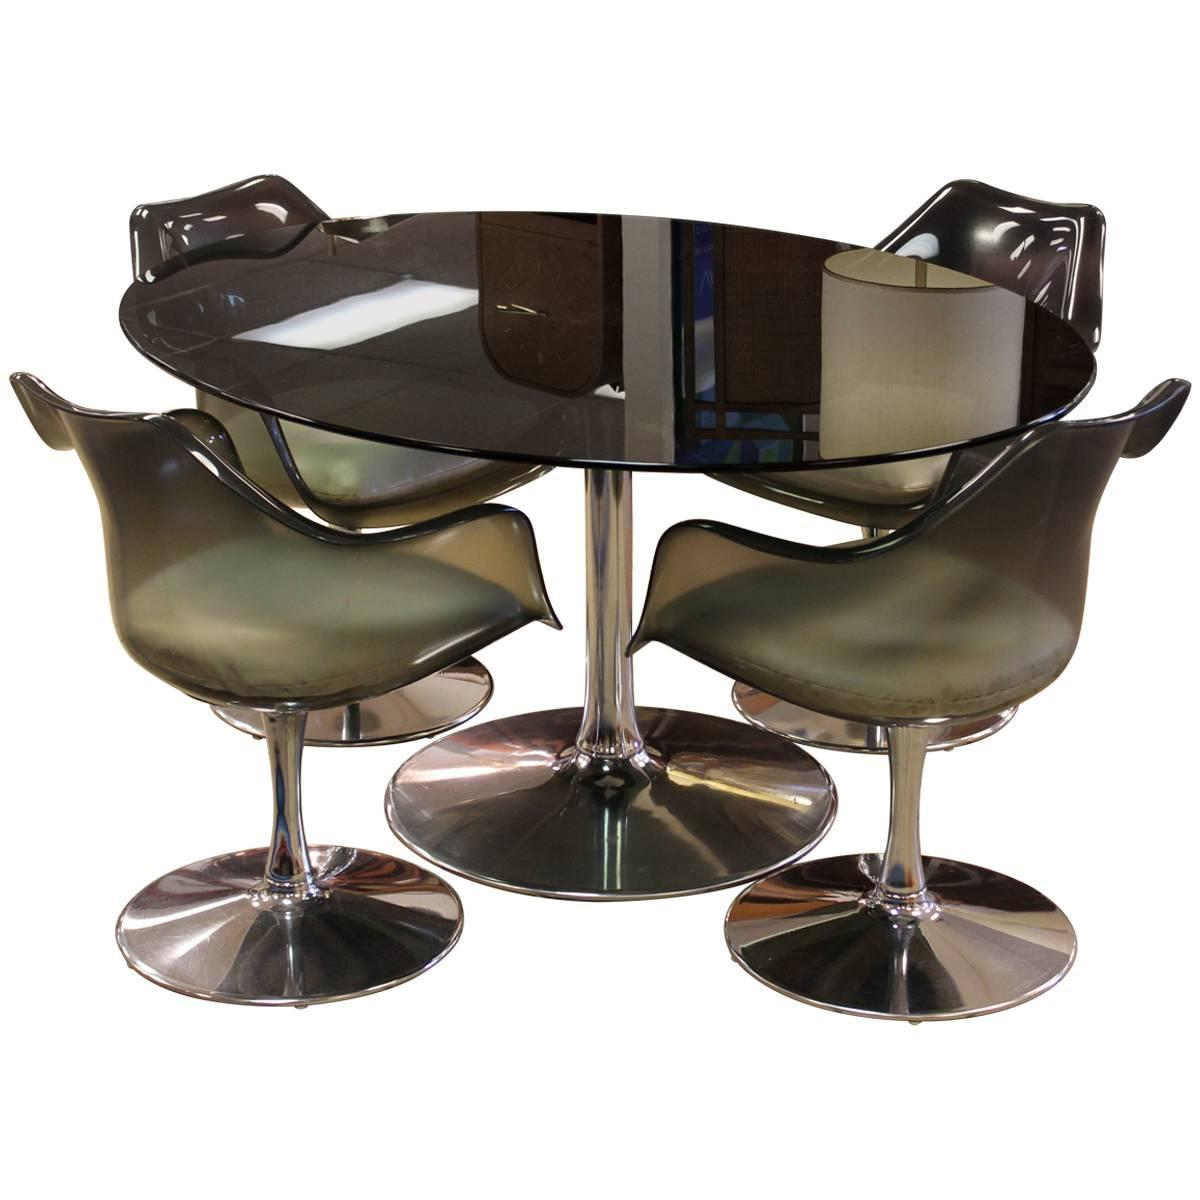 Captivating Mid Century Modern Chromcraft Dining Set Table Four Chairs Smoked Glass  Lucite For Sale